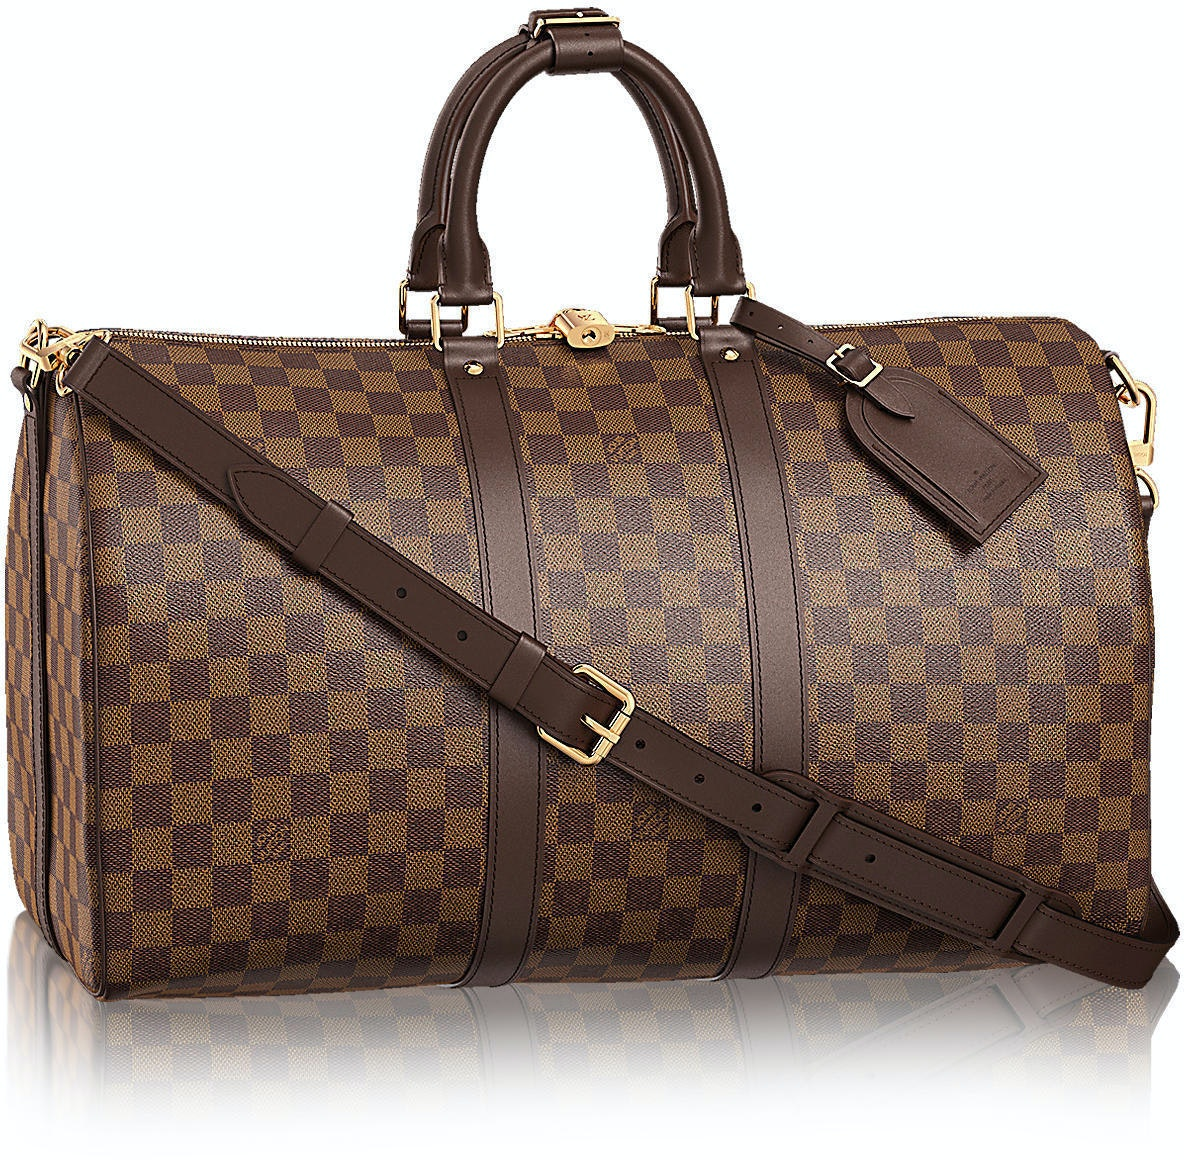 Louis Vuitton Keepall Bandouliere Damier Ebene (With Accessories) 45 Brown